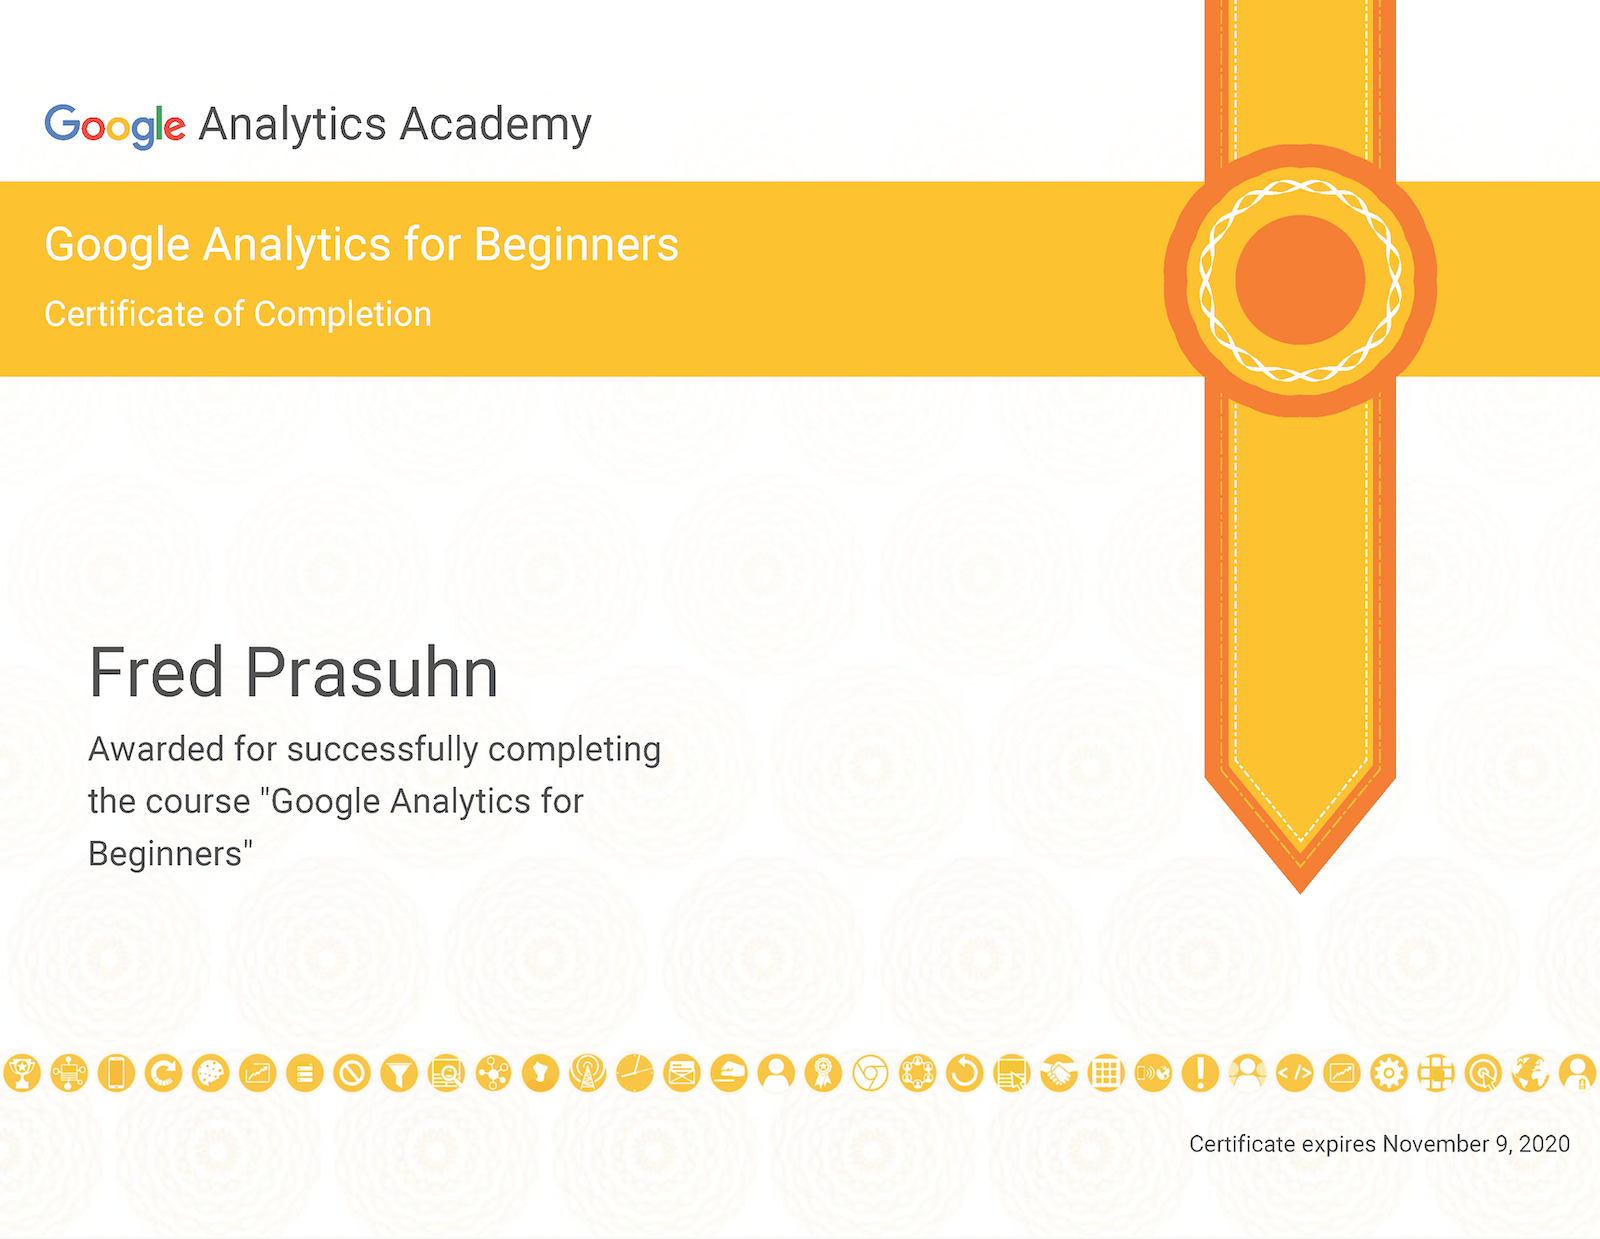 Certificate of completion: Google Analytics for Beginners